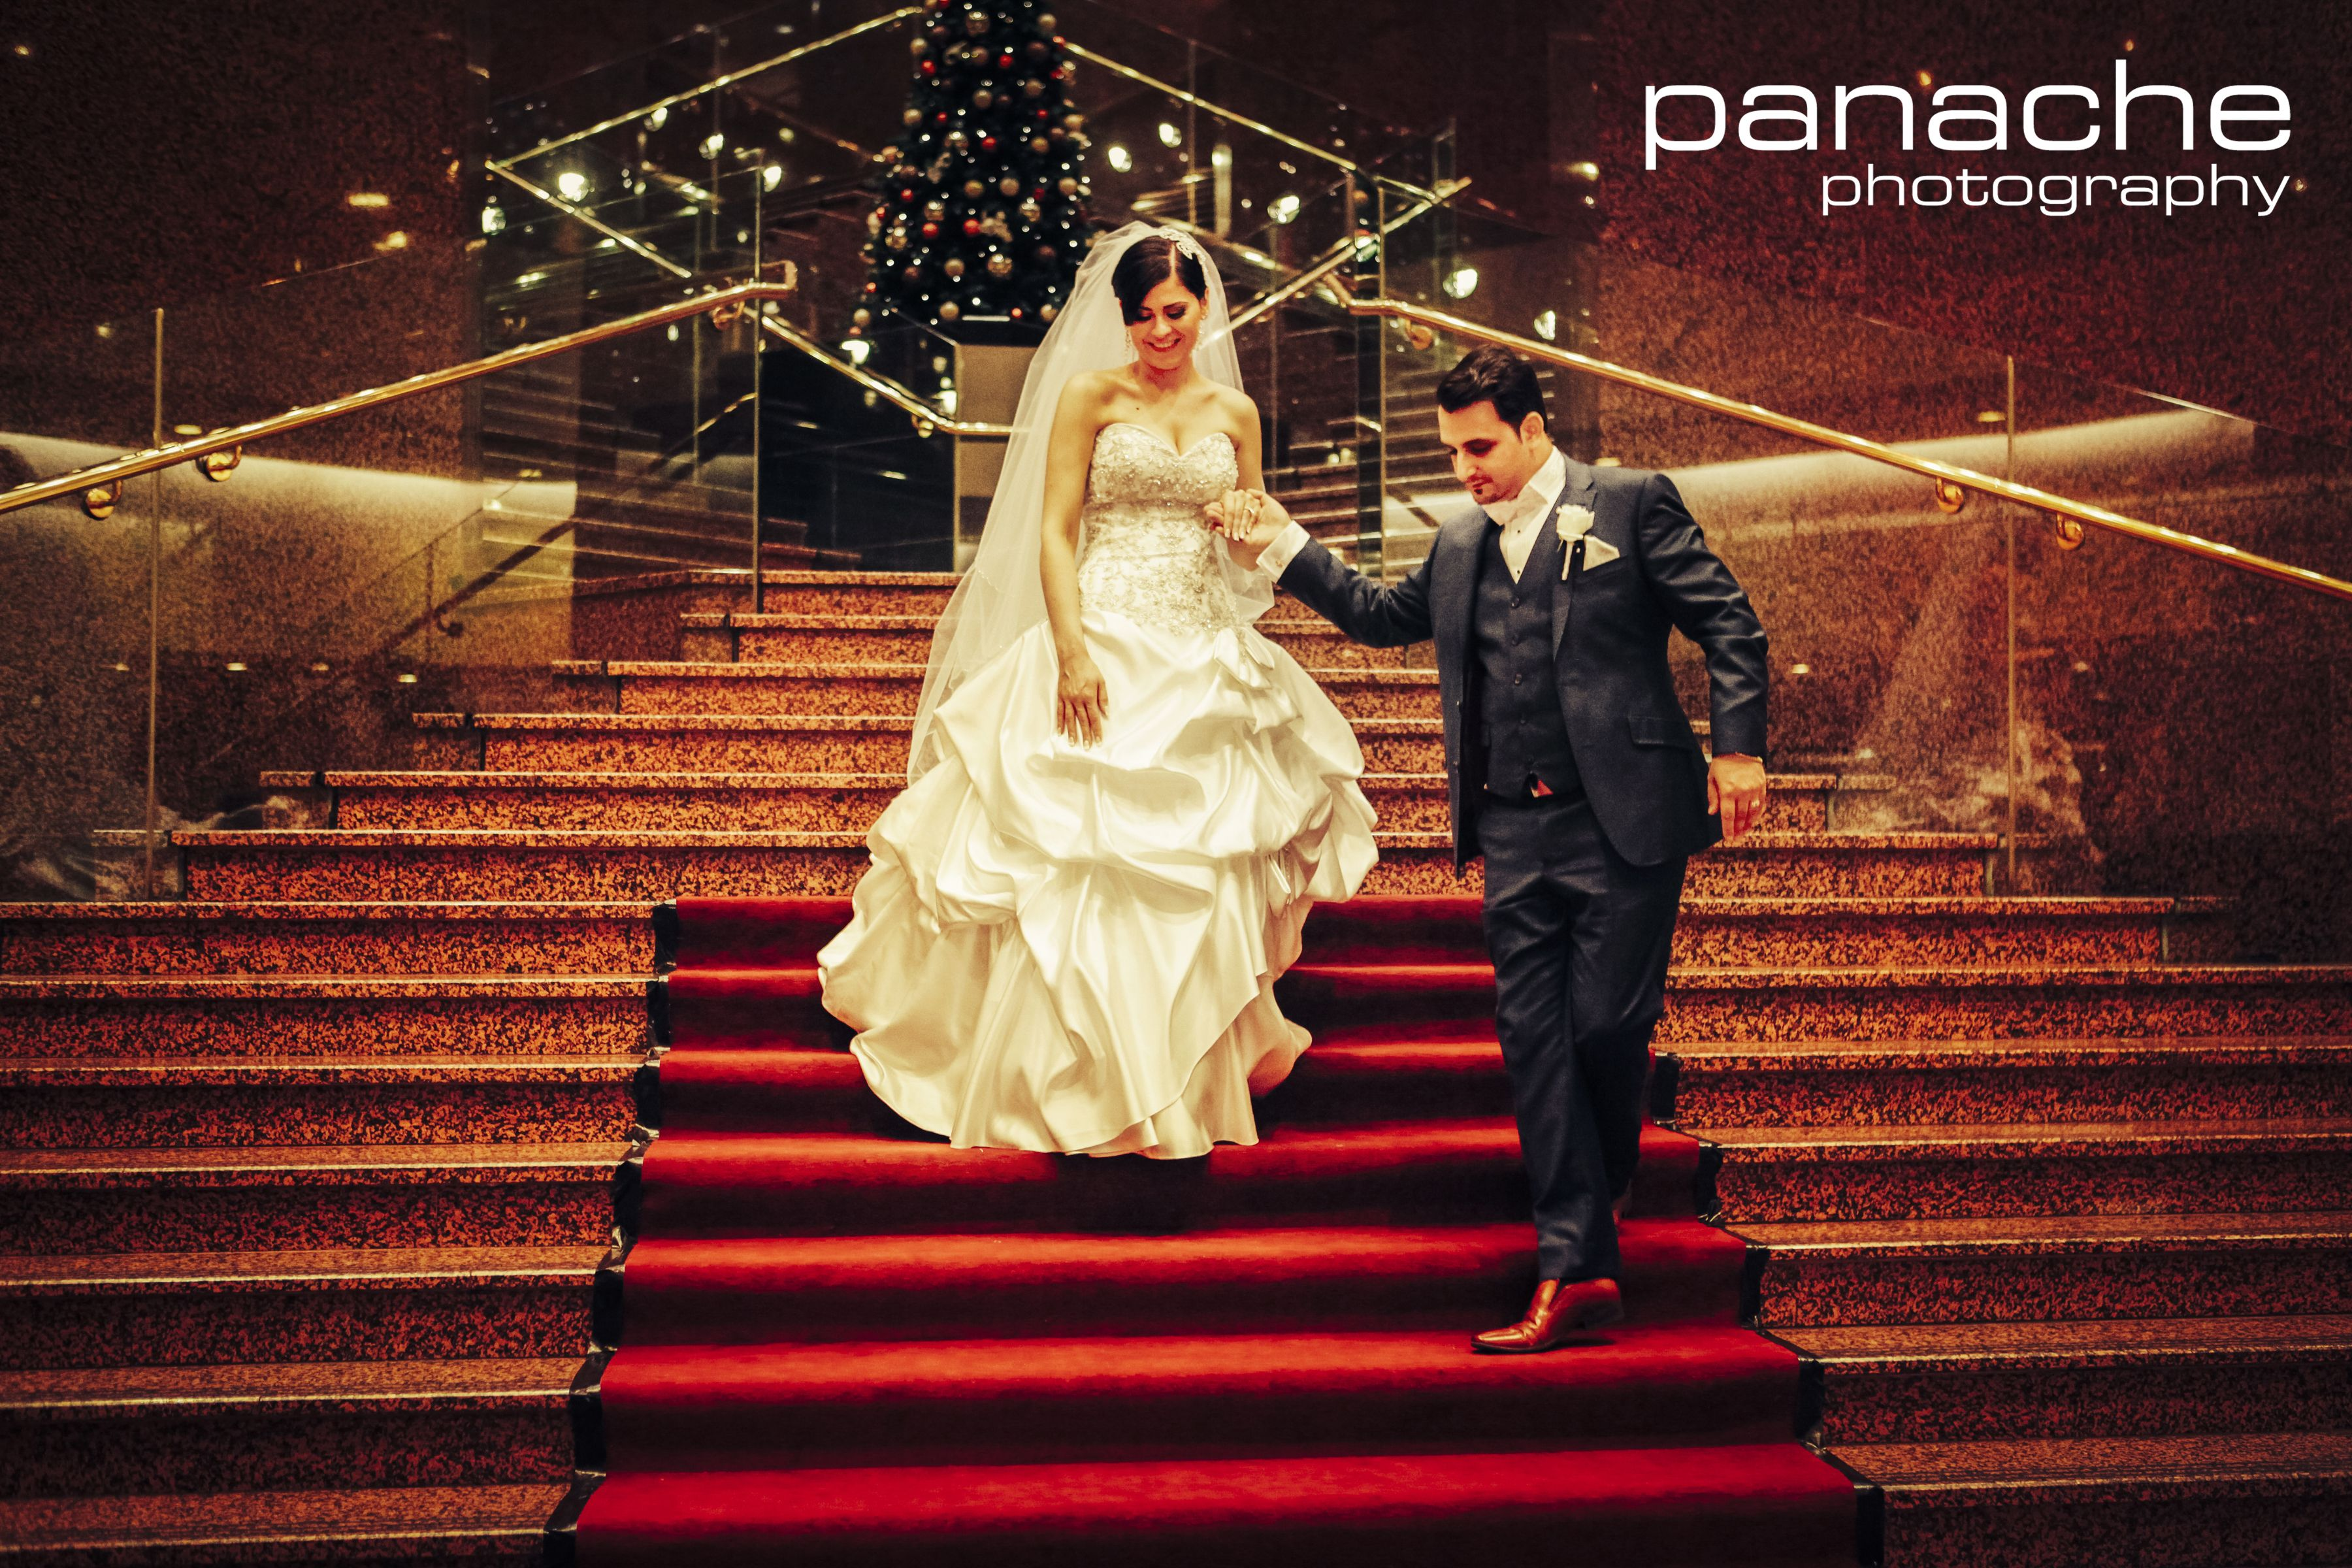 Stunning bride and groom arriving via the grand staircase world